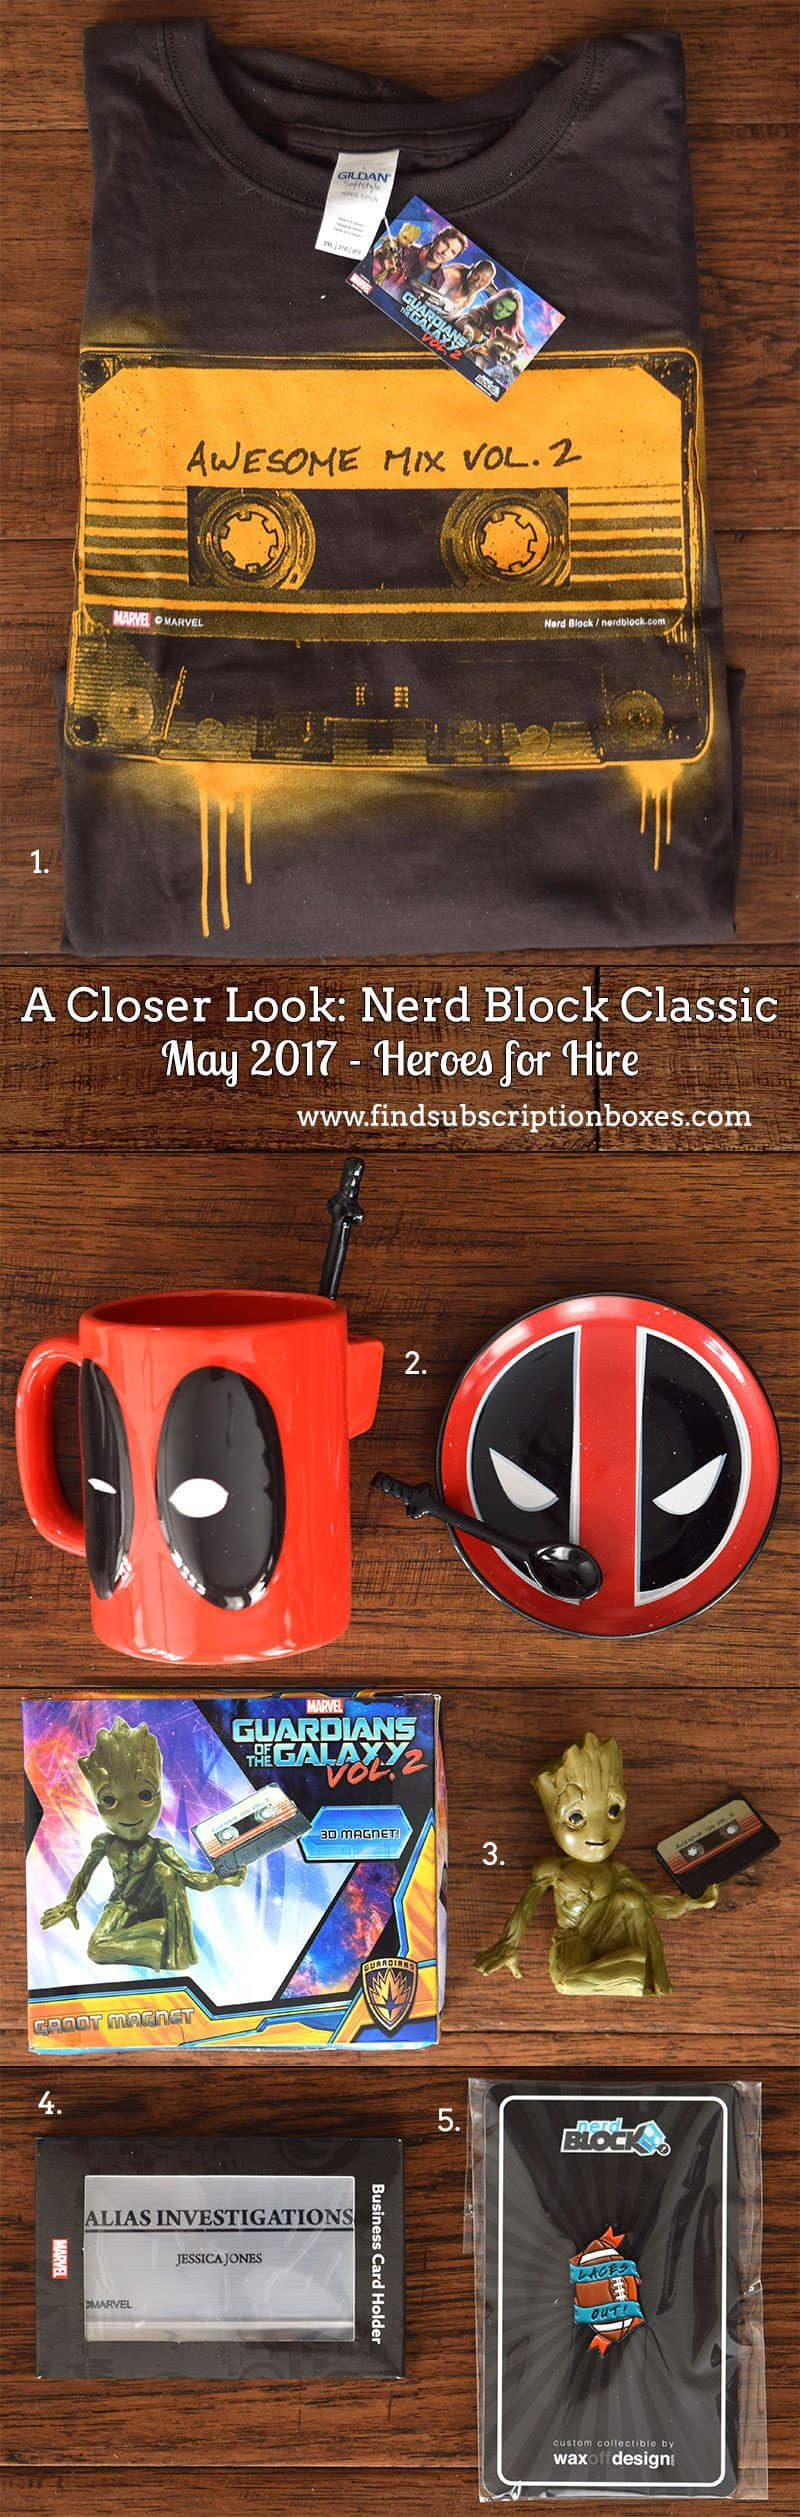 May 2017 Nerd Block Classic Review – Heroes for Hire - Inside the Box